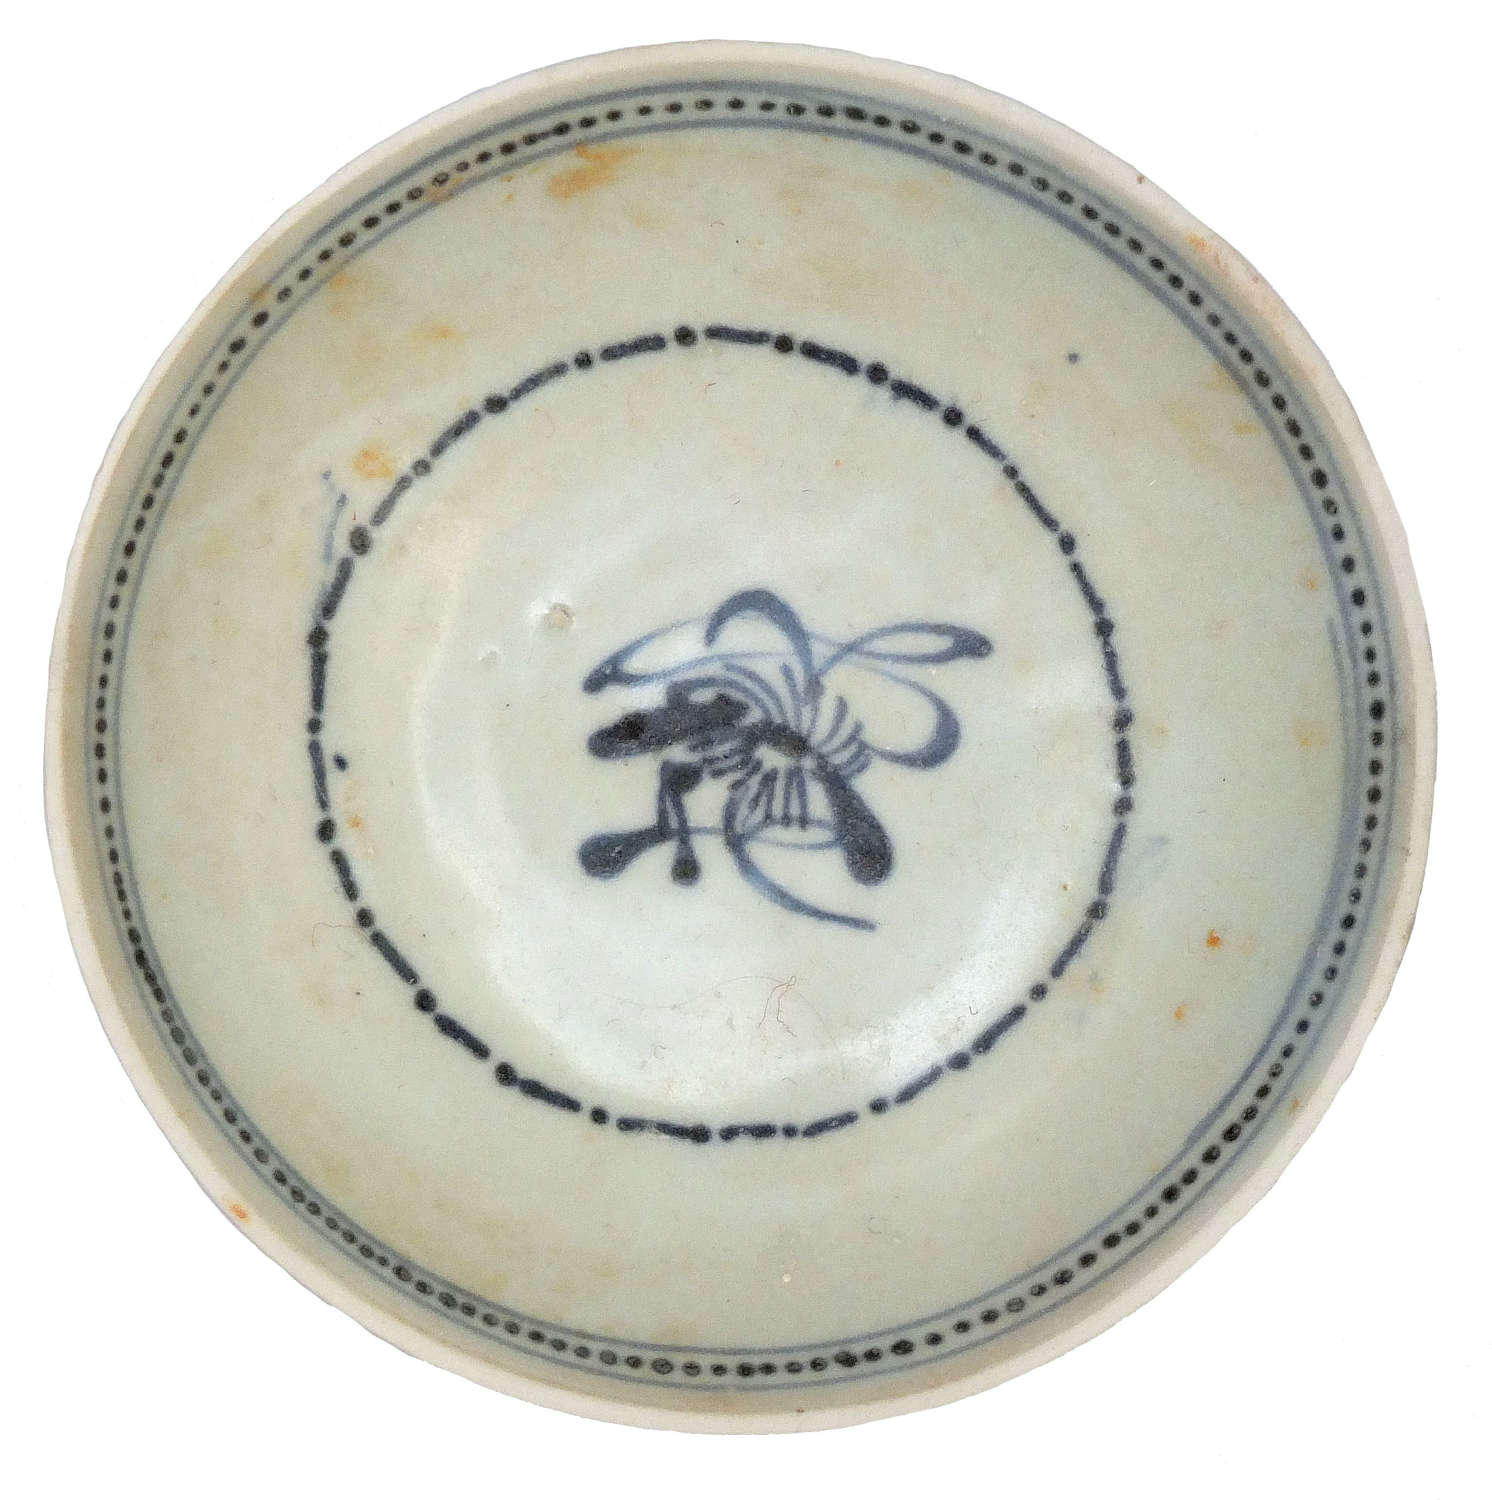 A Chinese Tek Sing shipwreck blue and white porcelain saucer